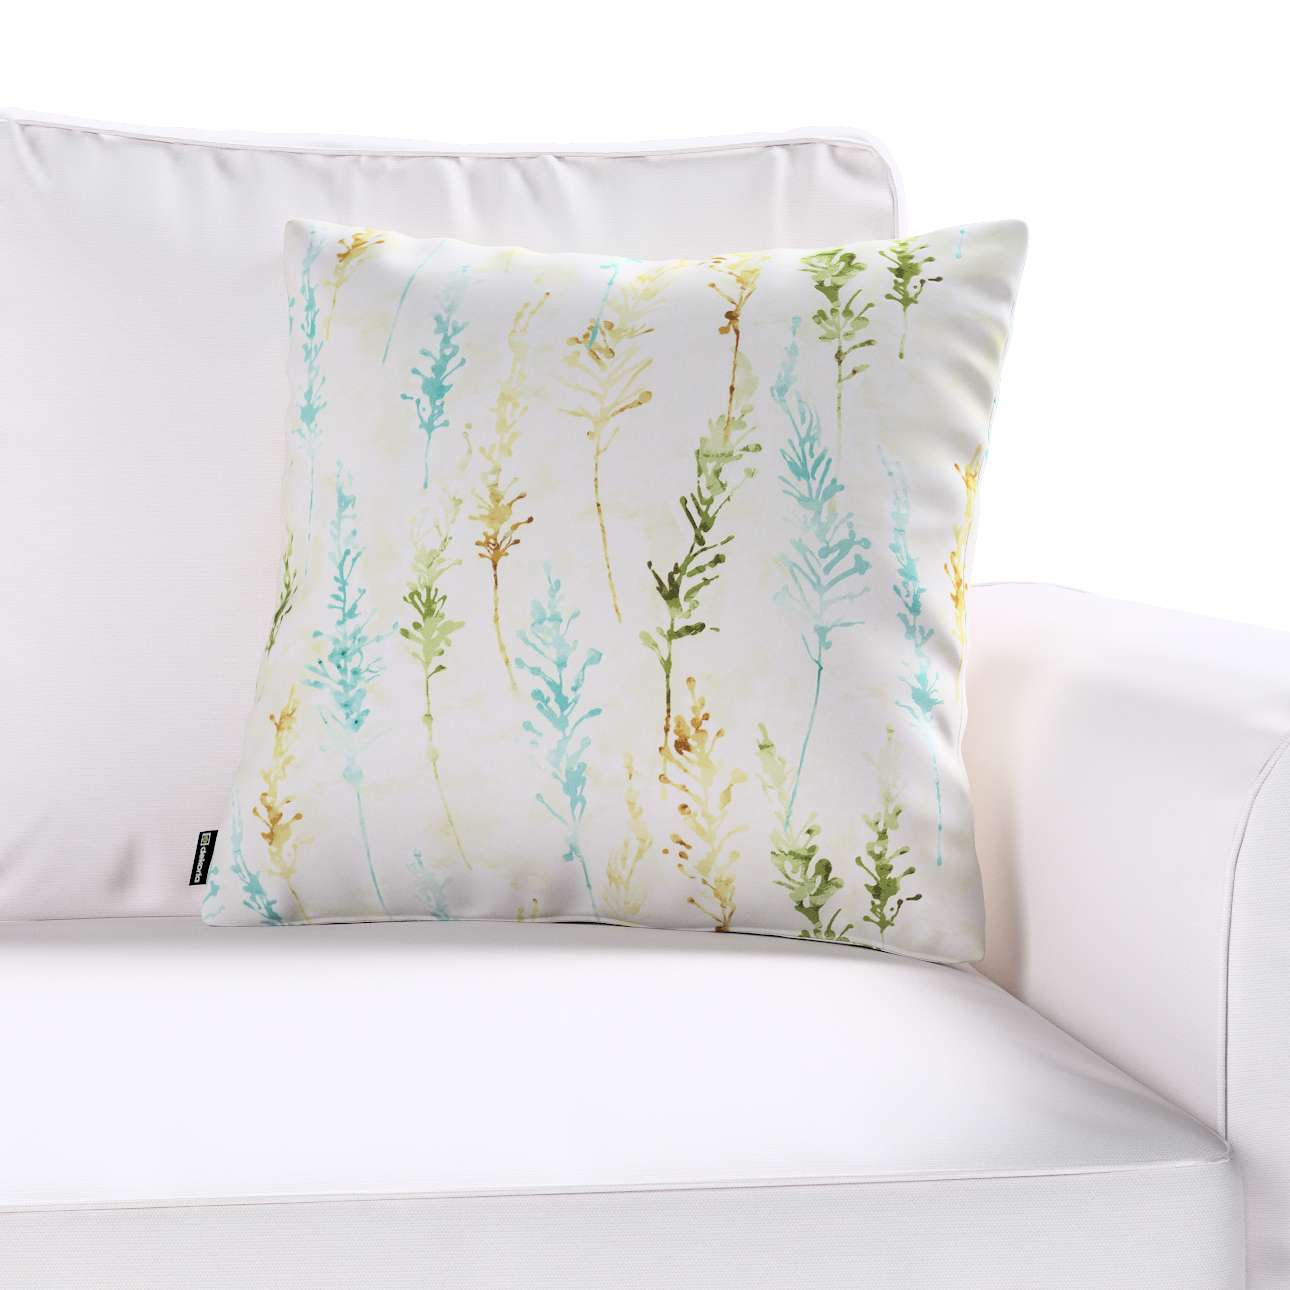 Kinga cushion cover 43 x 43 cm (17 x 17 inch) in collection Acapulco, fabric: 141-38